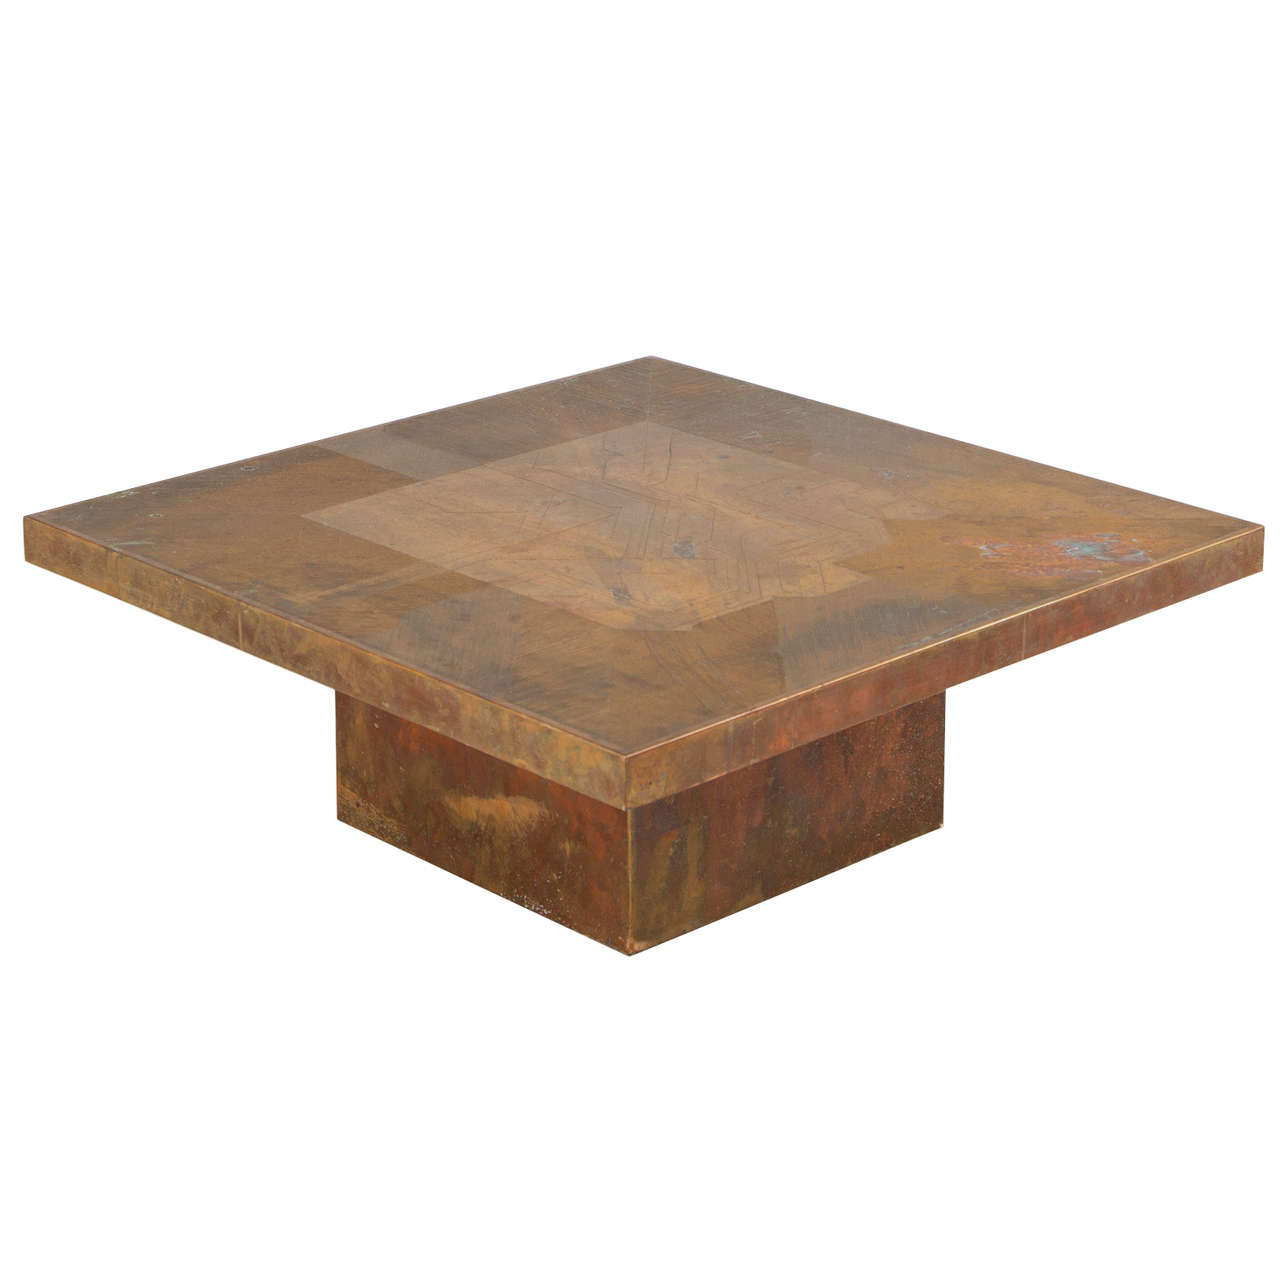 Copper Coffee Table With Futuristic Pattern At 1stdibs